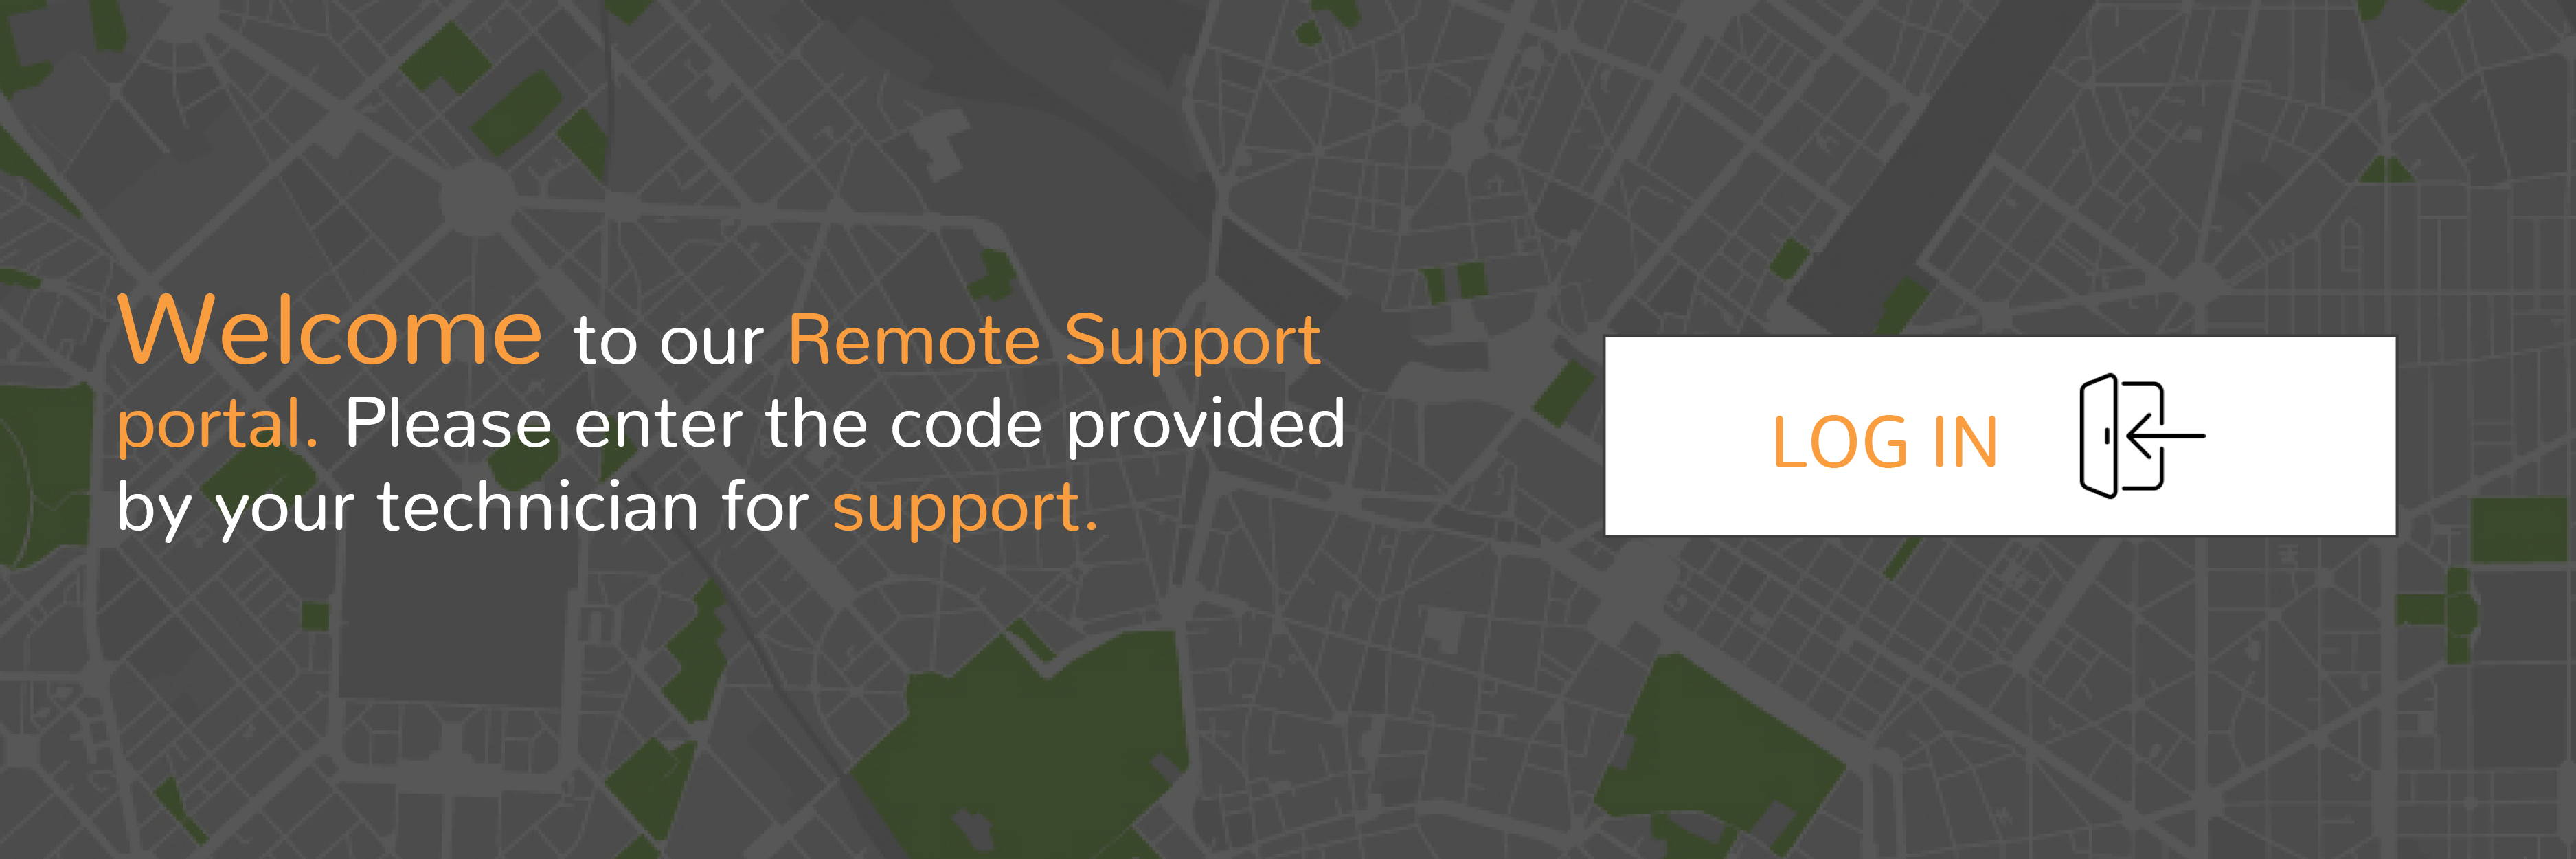 Join with a code_CTA_v2 (w-periods v.2).png